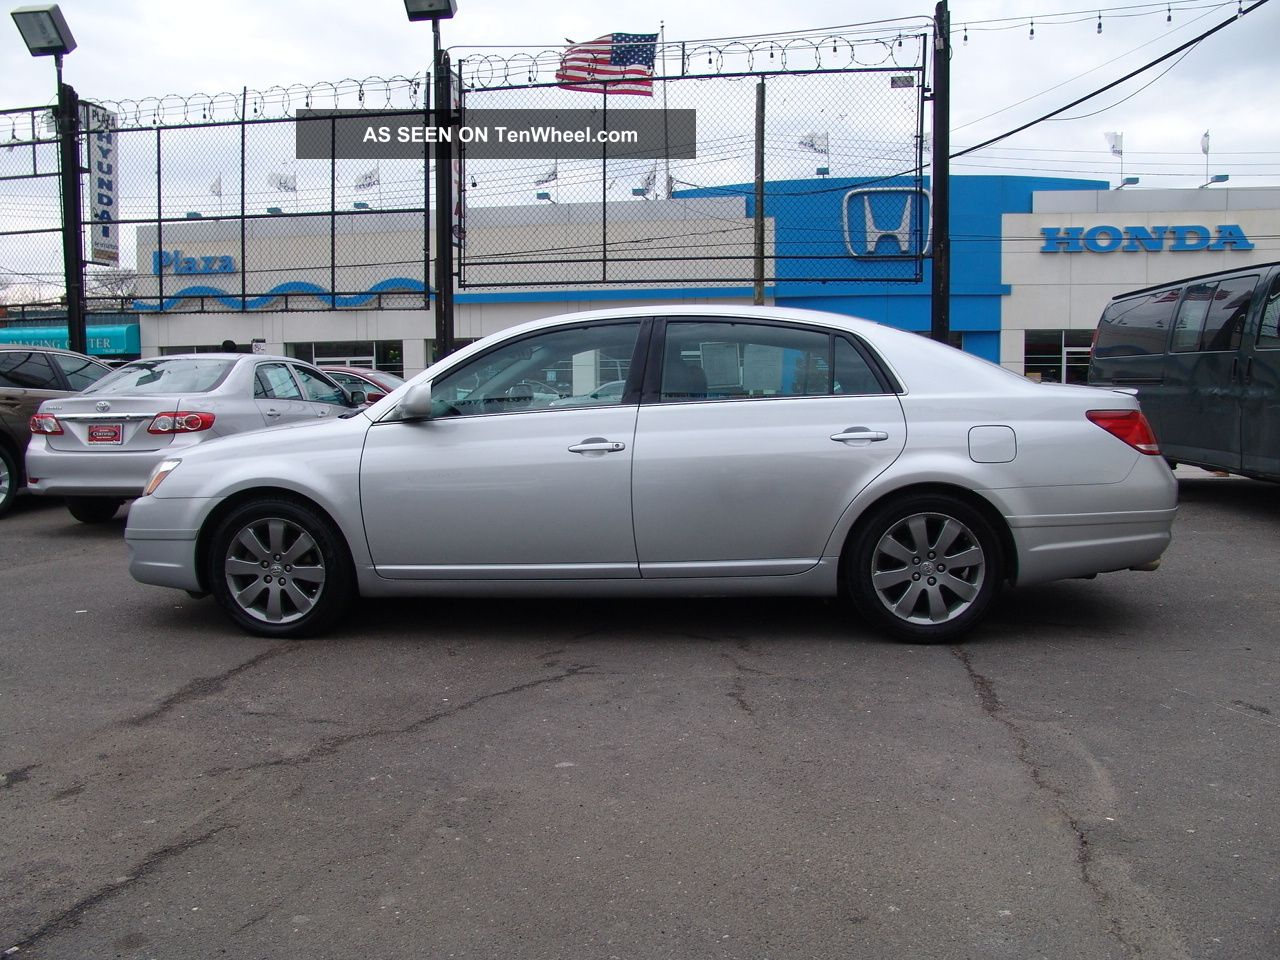 2007 toyota avalon touring sedan 4 door 3 5l owners manual 2016 audi a6 owners manual for 2006 audi a6